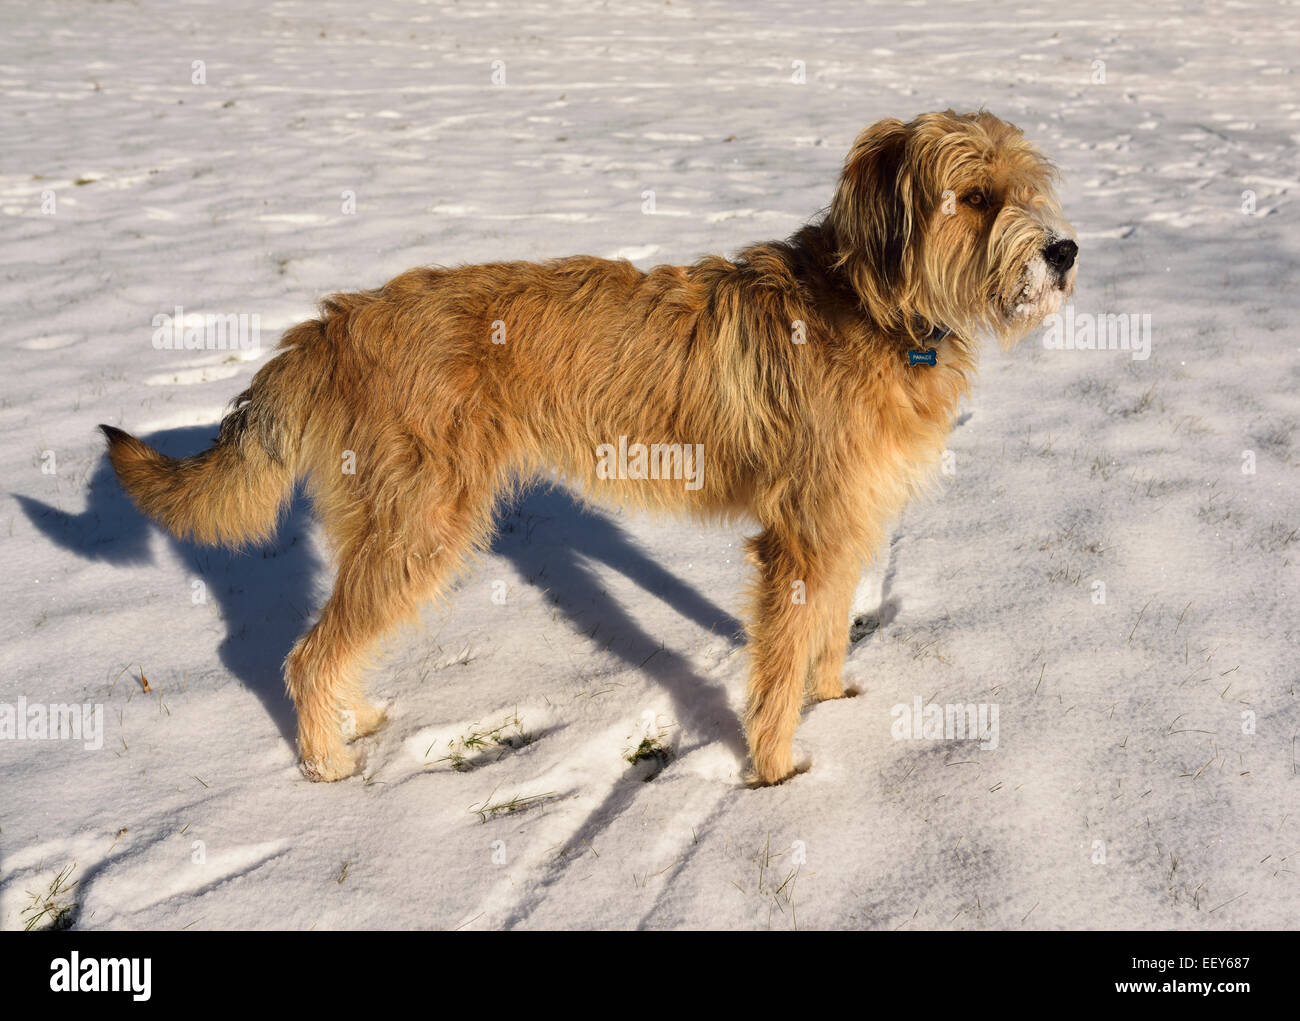 Mixed breed Poodle, Great Pyrenees, Russian Wolfhound, pet dog standing off leash in a snowy field in winter - Stock Image